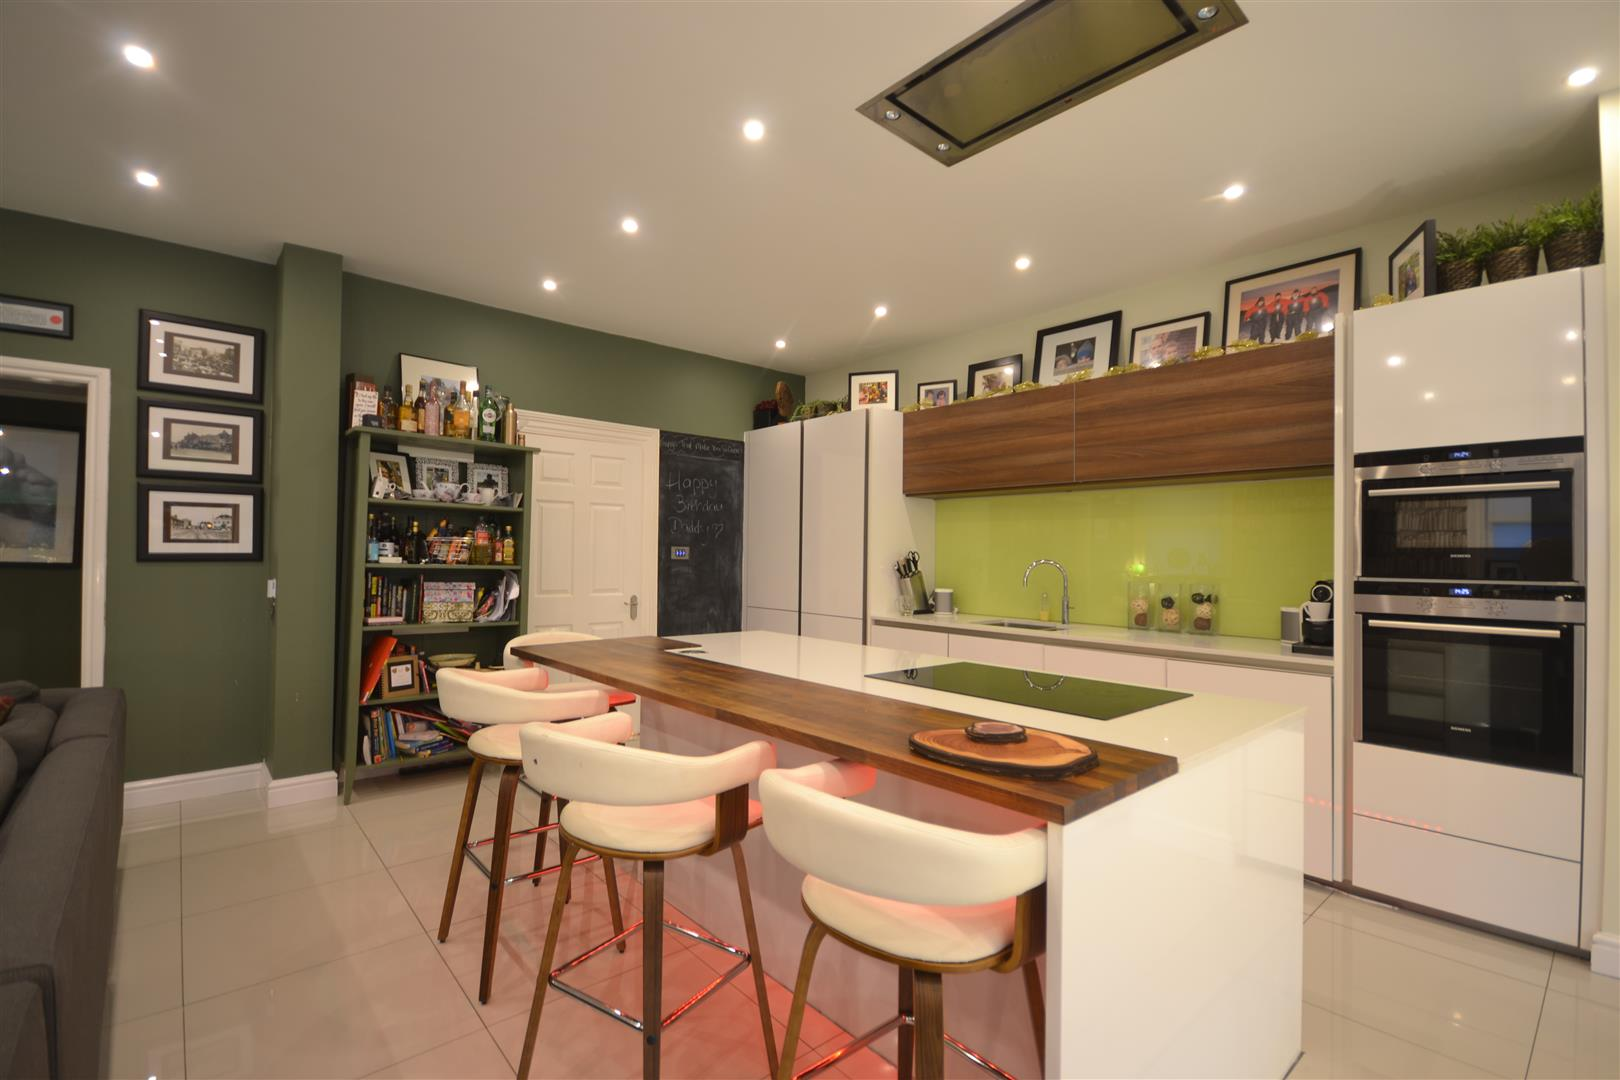 KITCHEN DINER ALT 1.jpg